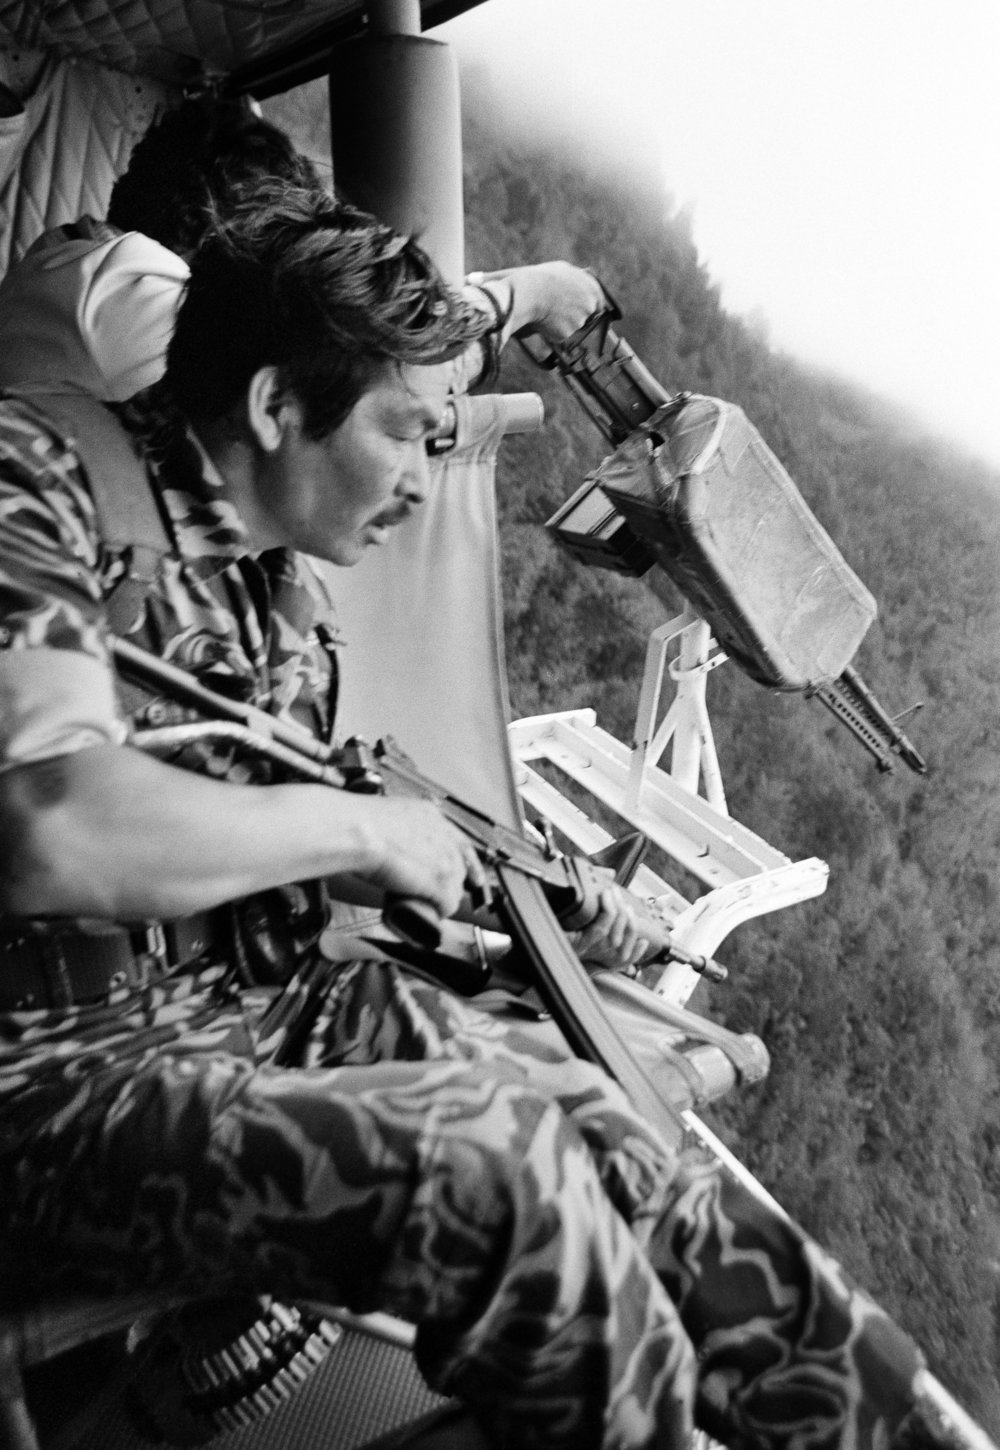 Army soldiers fire on local Maya people from a US-made Bell helicopter co-piloted by Guatemalan army General Benedicto Lucas García outside of Santa Cruz del Quiché, Guatemala, January 1, 1982. Scorched earth was a brutal counterinsurgency tactic employed by the Guatemalan military that holistically targeted the insurgent base through complete destruction of infrastructure and food supply, as well as the persecution of civilians suspected of aiding the guerrilla cause. For his role as army general in the internal armed conflict, Benedicto Lucas García was sentenced on May 23, 2018 to 58 years of prison for crimes against humanity, aggravated sexual violence and enforced disappearance.